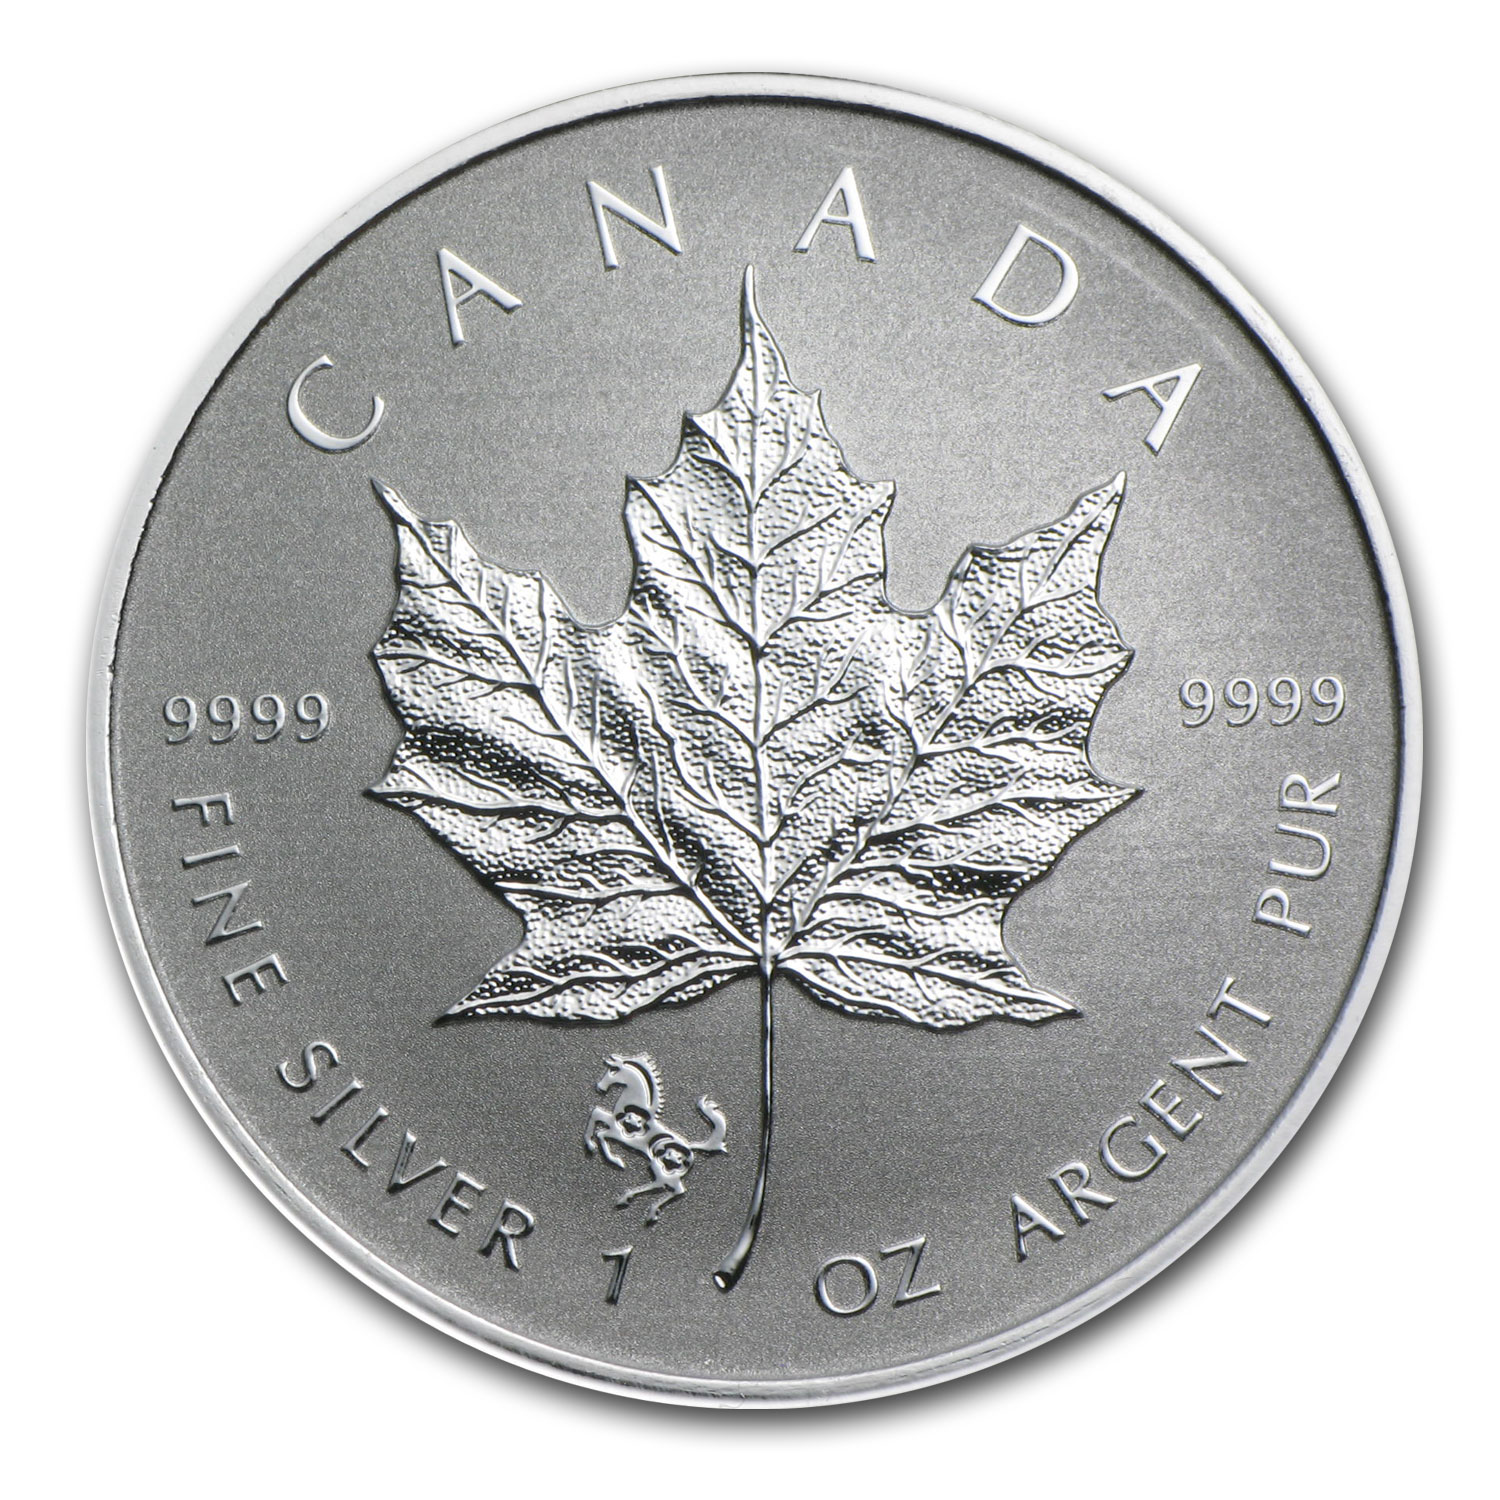 2014 Canada 1 Oz Silver Maple Leaf Horse Privy Rcm